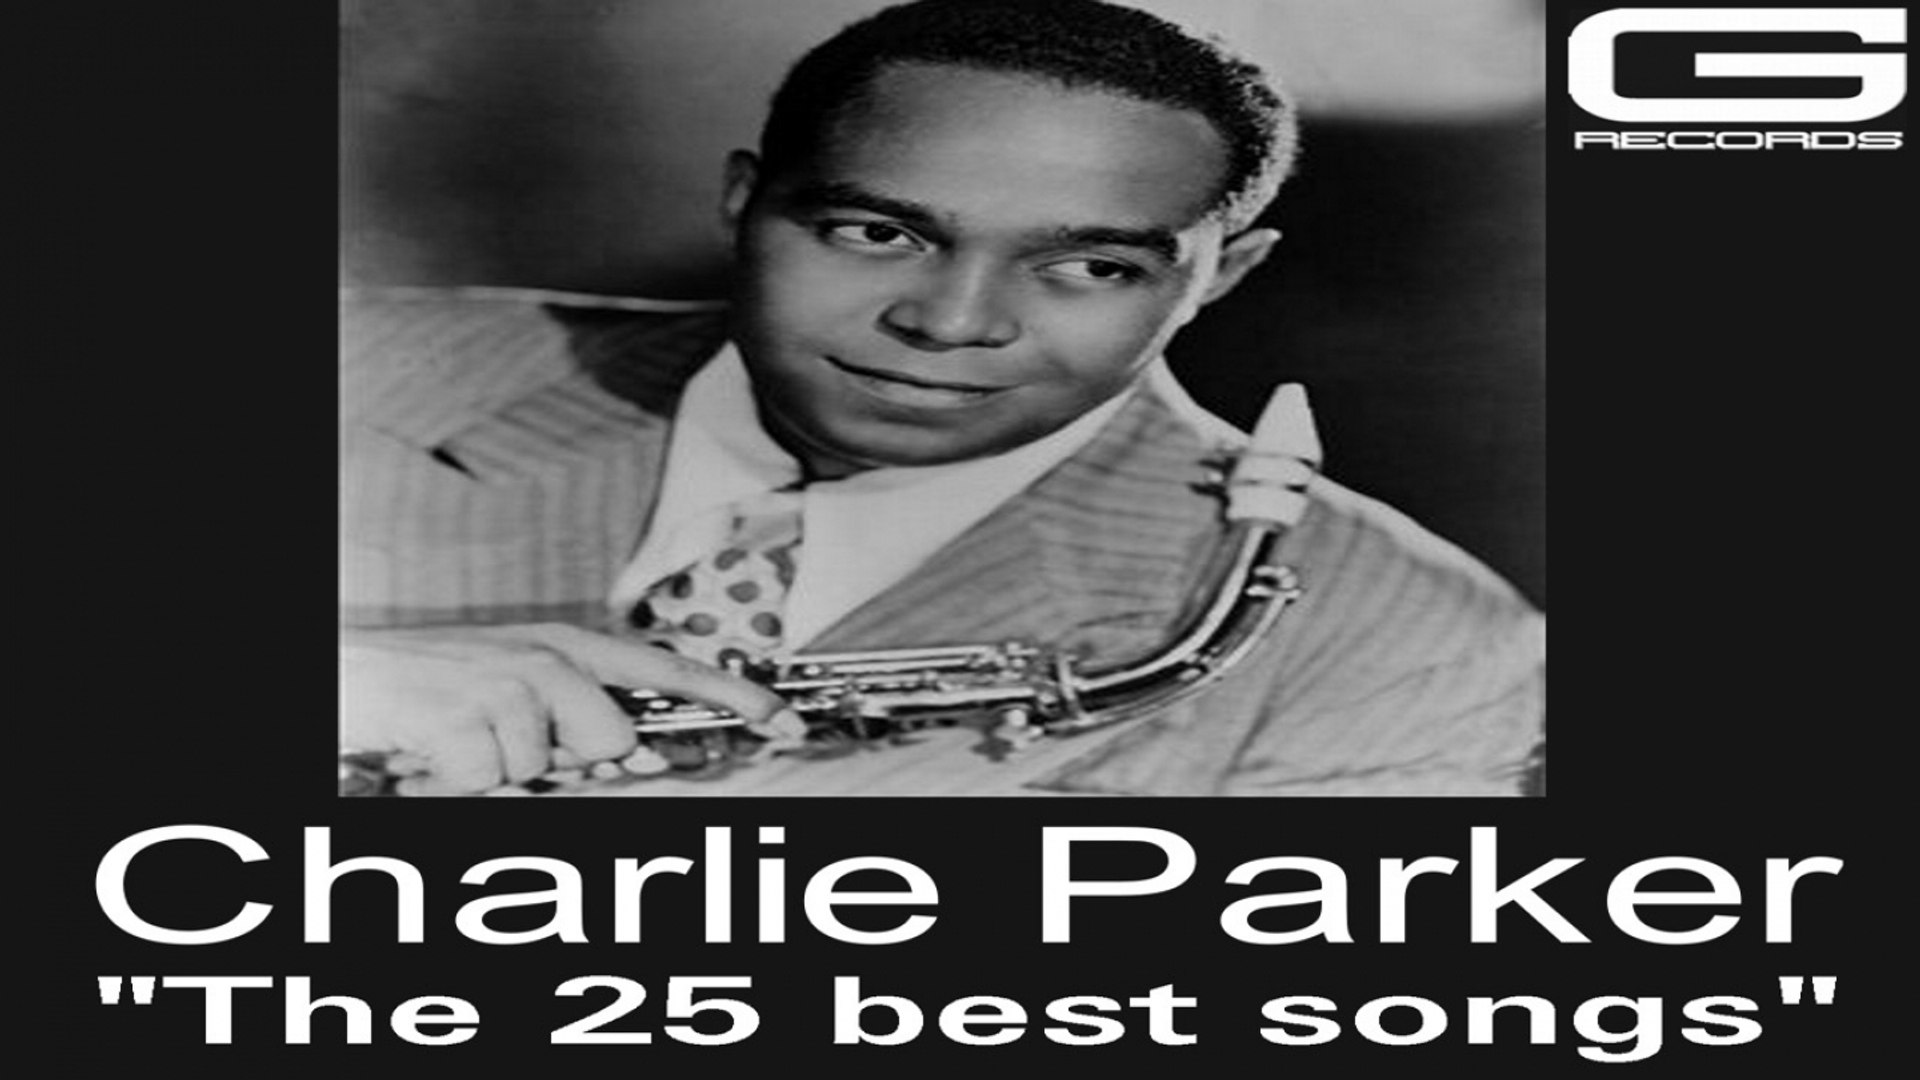 Charlie Parker - Star Eyes